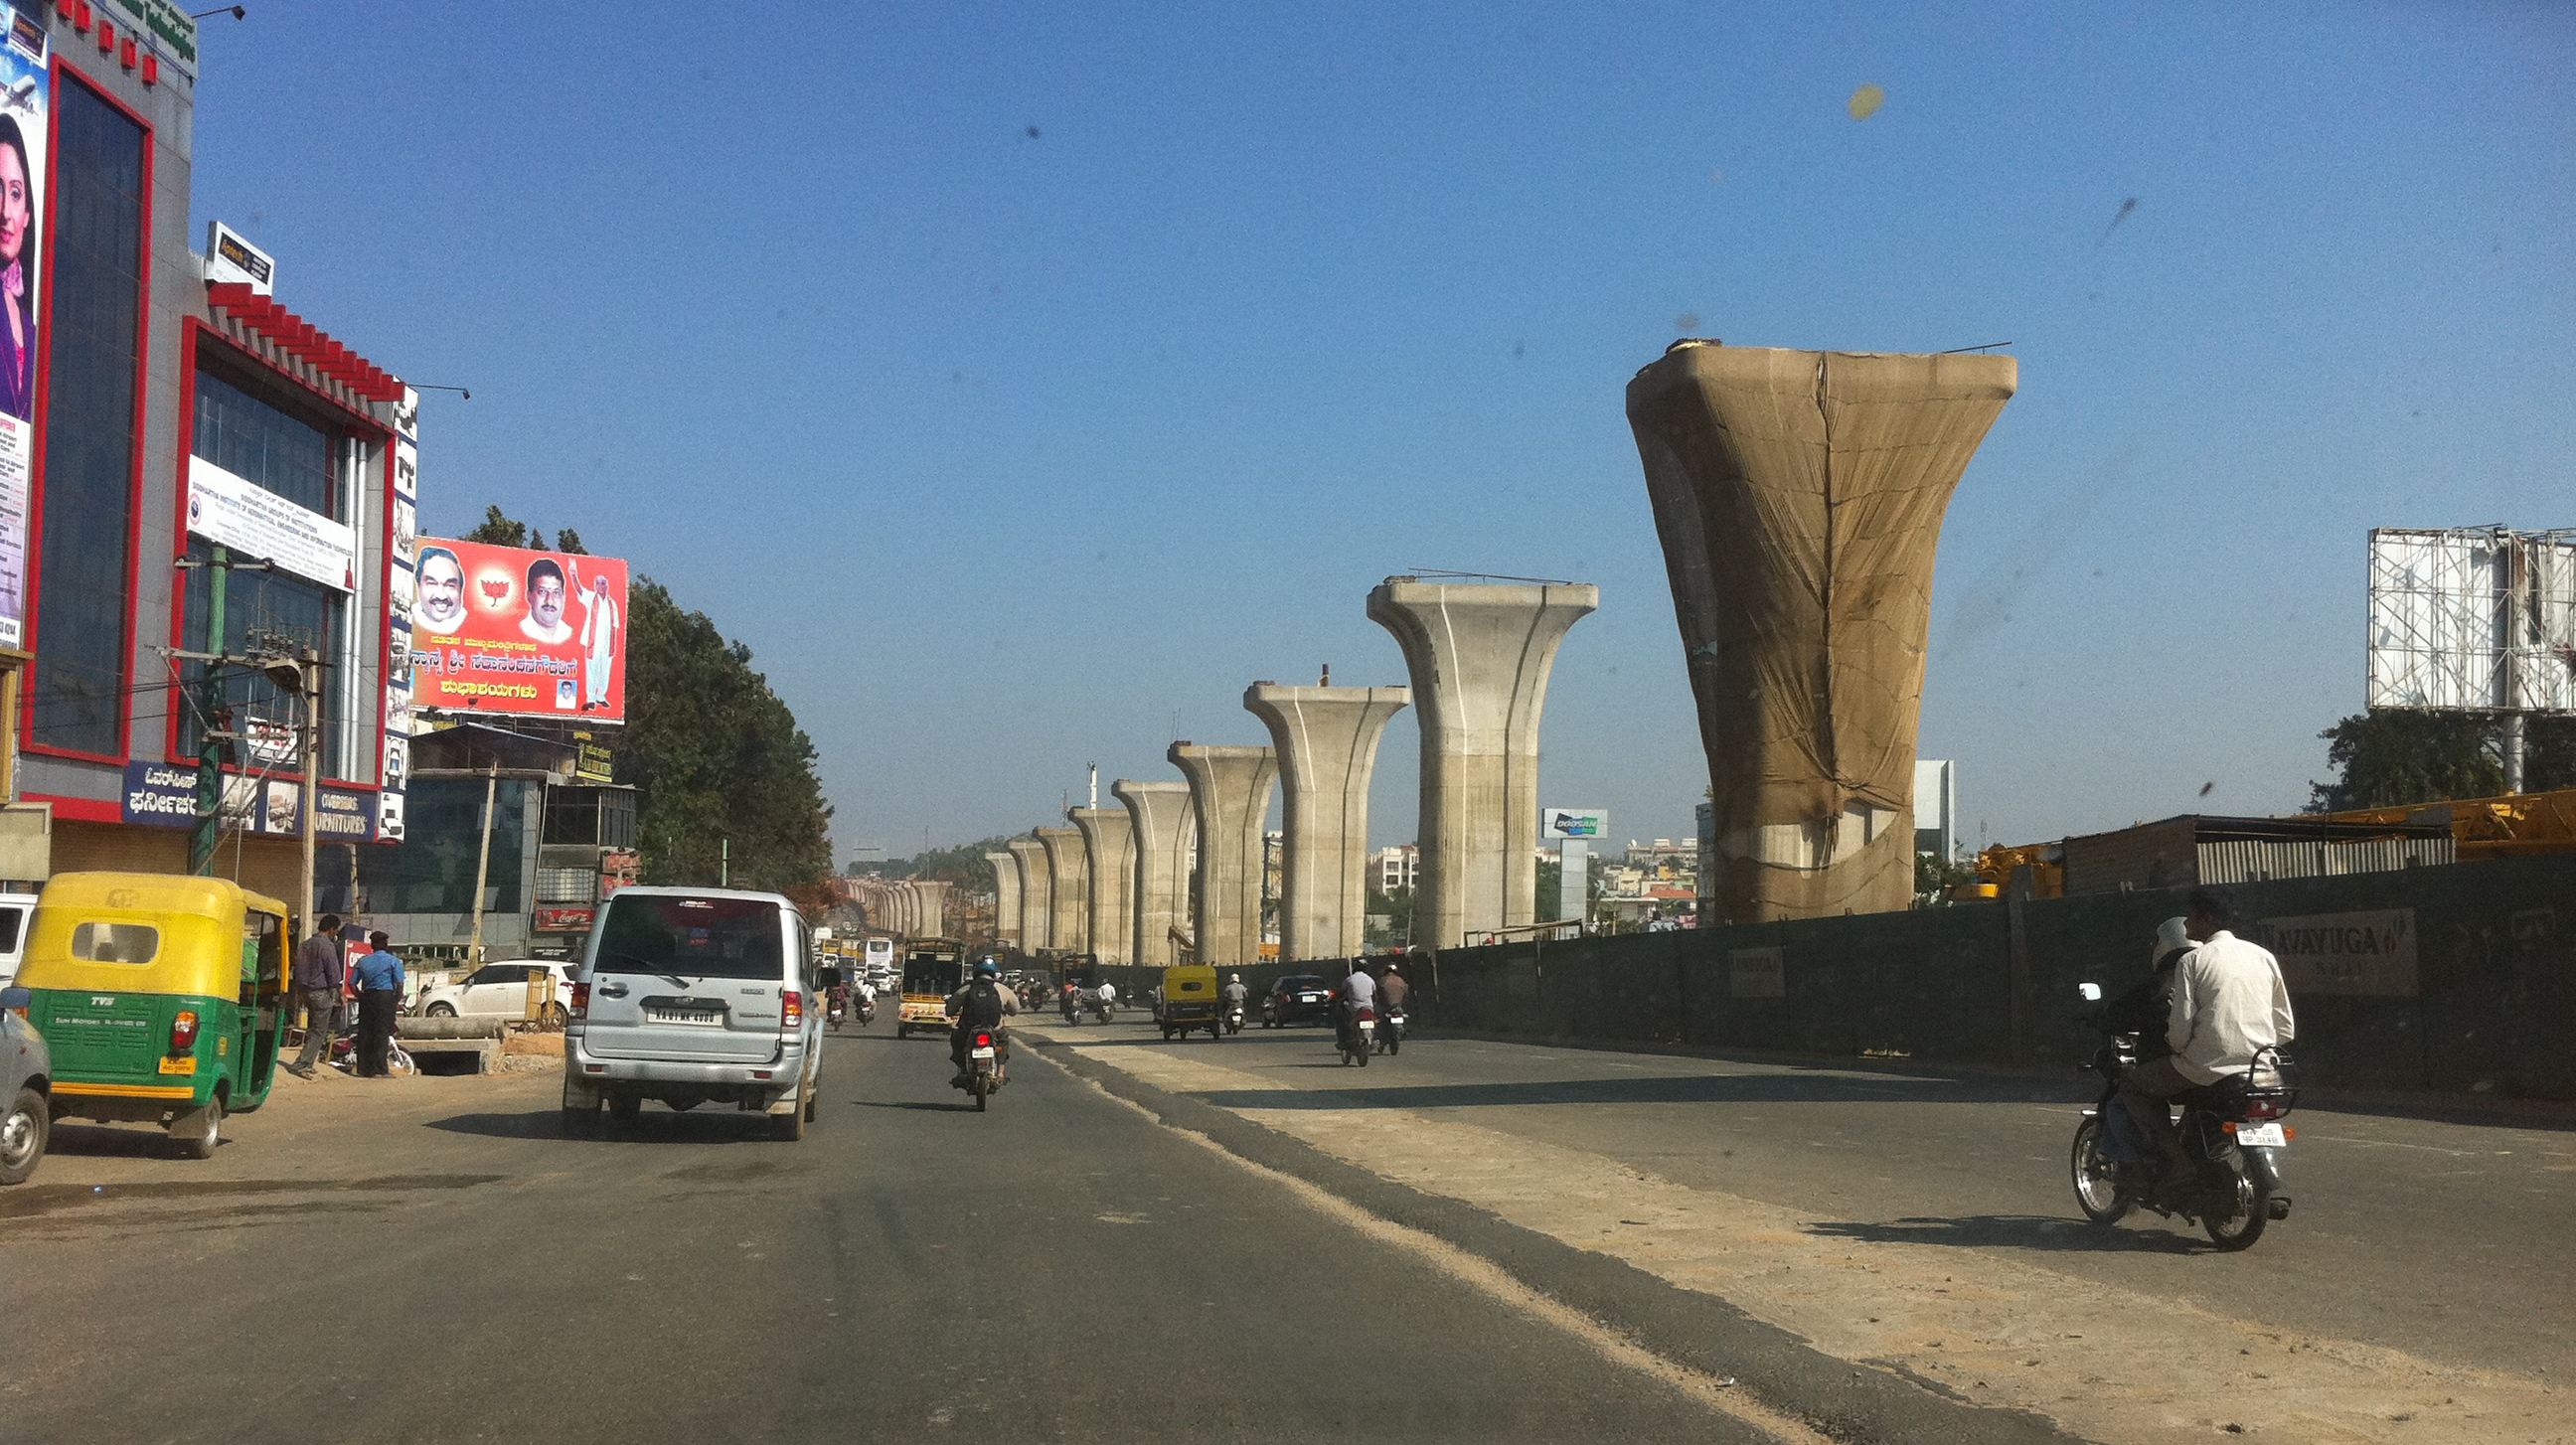 Bangalore India  city pictures gallery : Bangalore India Highway under construction Wikipedia, the ...